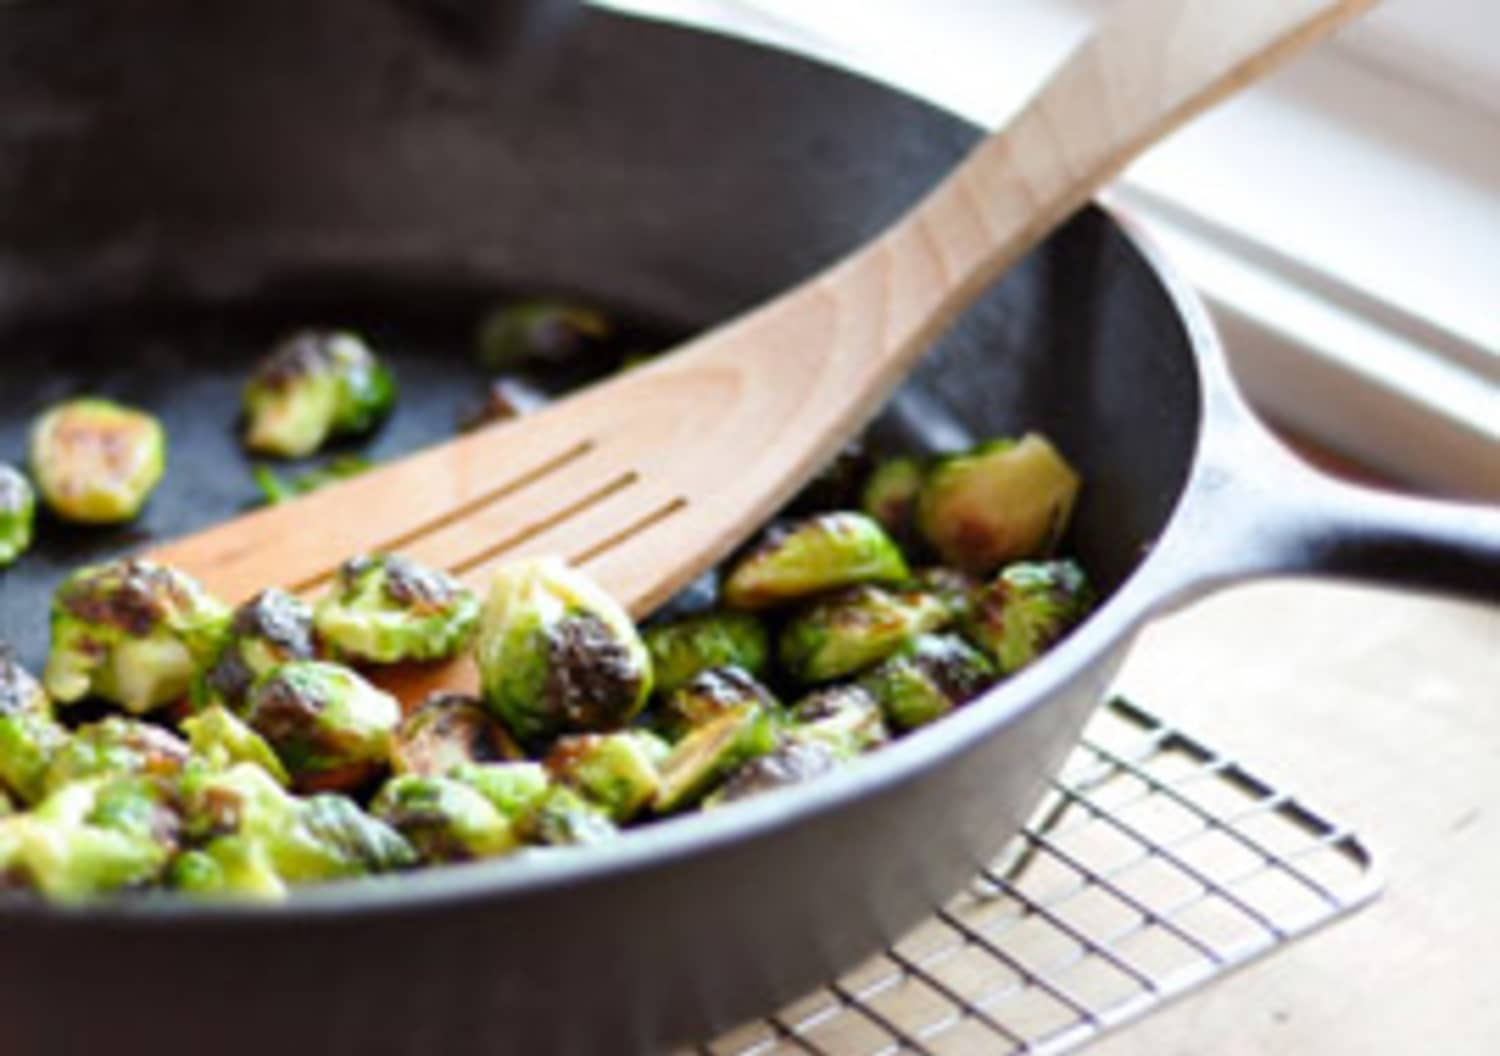 Can You Suggest a Good Cast Iron Skillet?